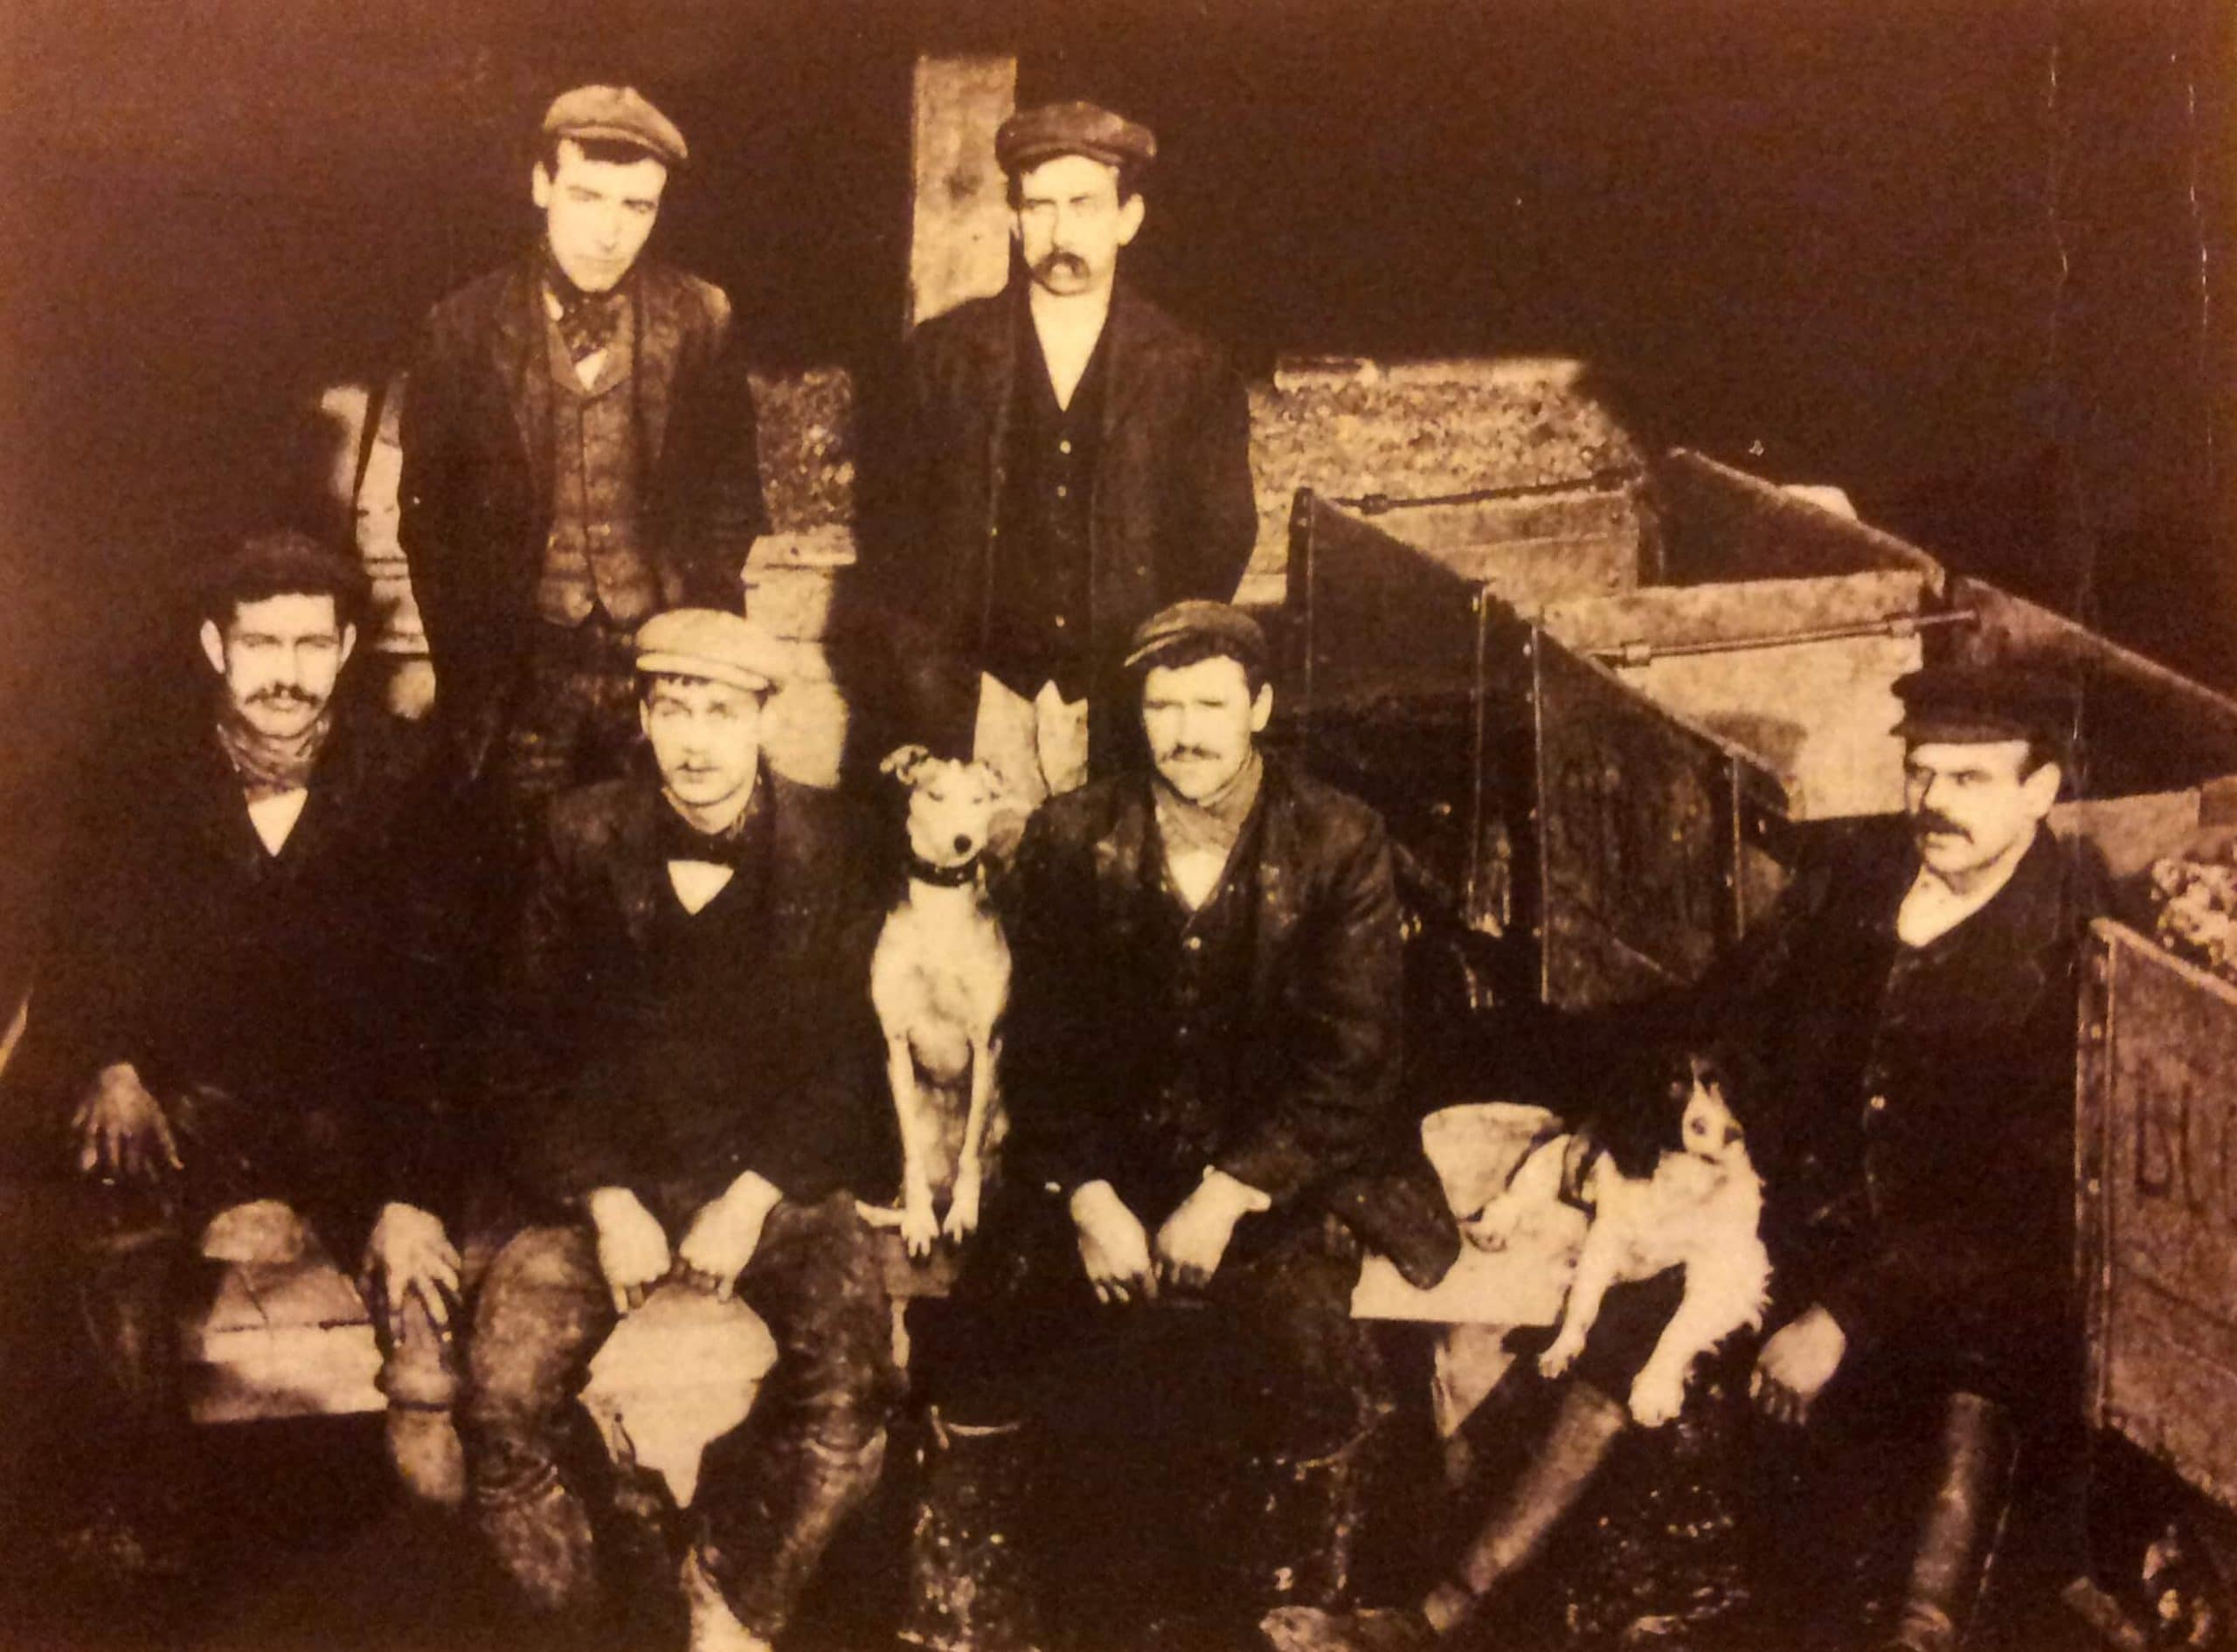 Quarrymen early 1900s